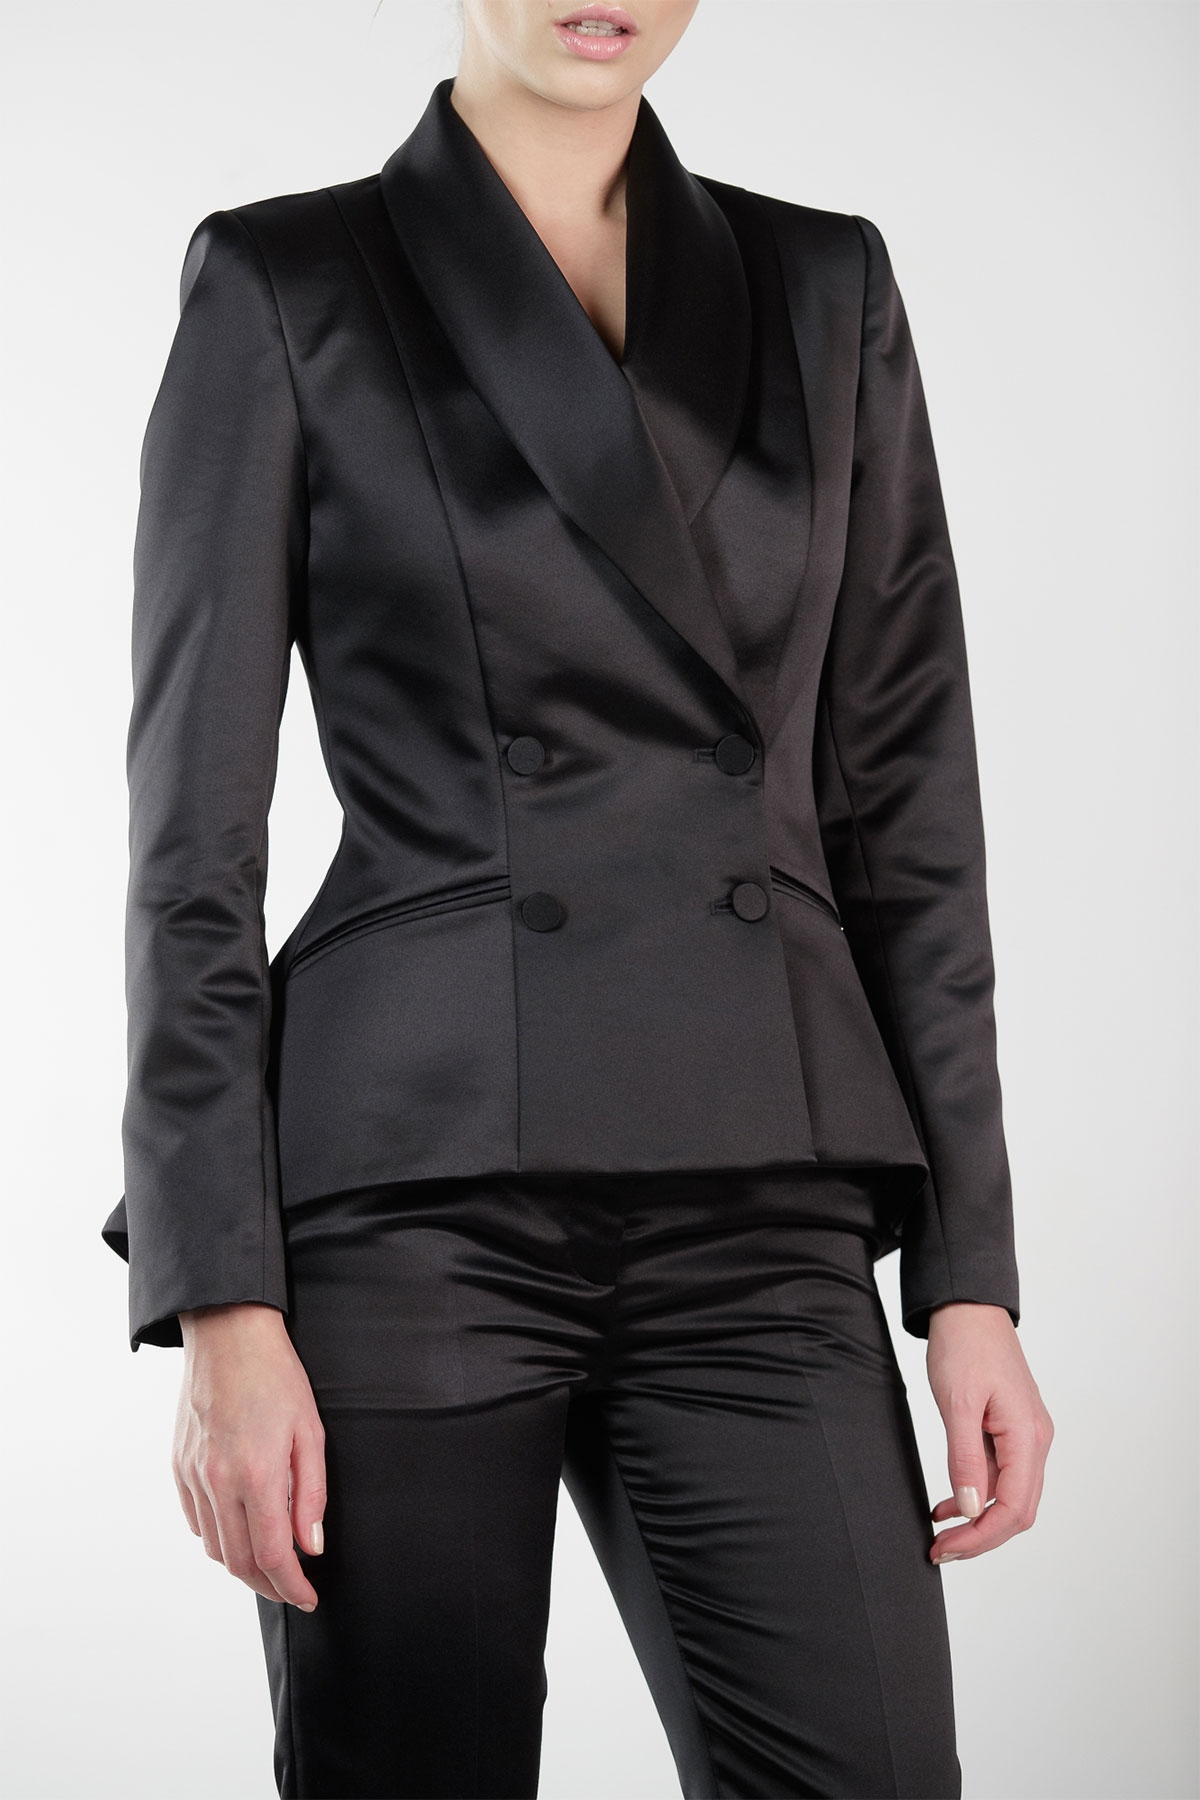 BLACK SATIN DOUBLE BREASTED JACKET